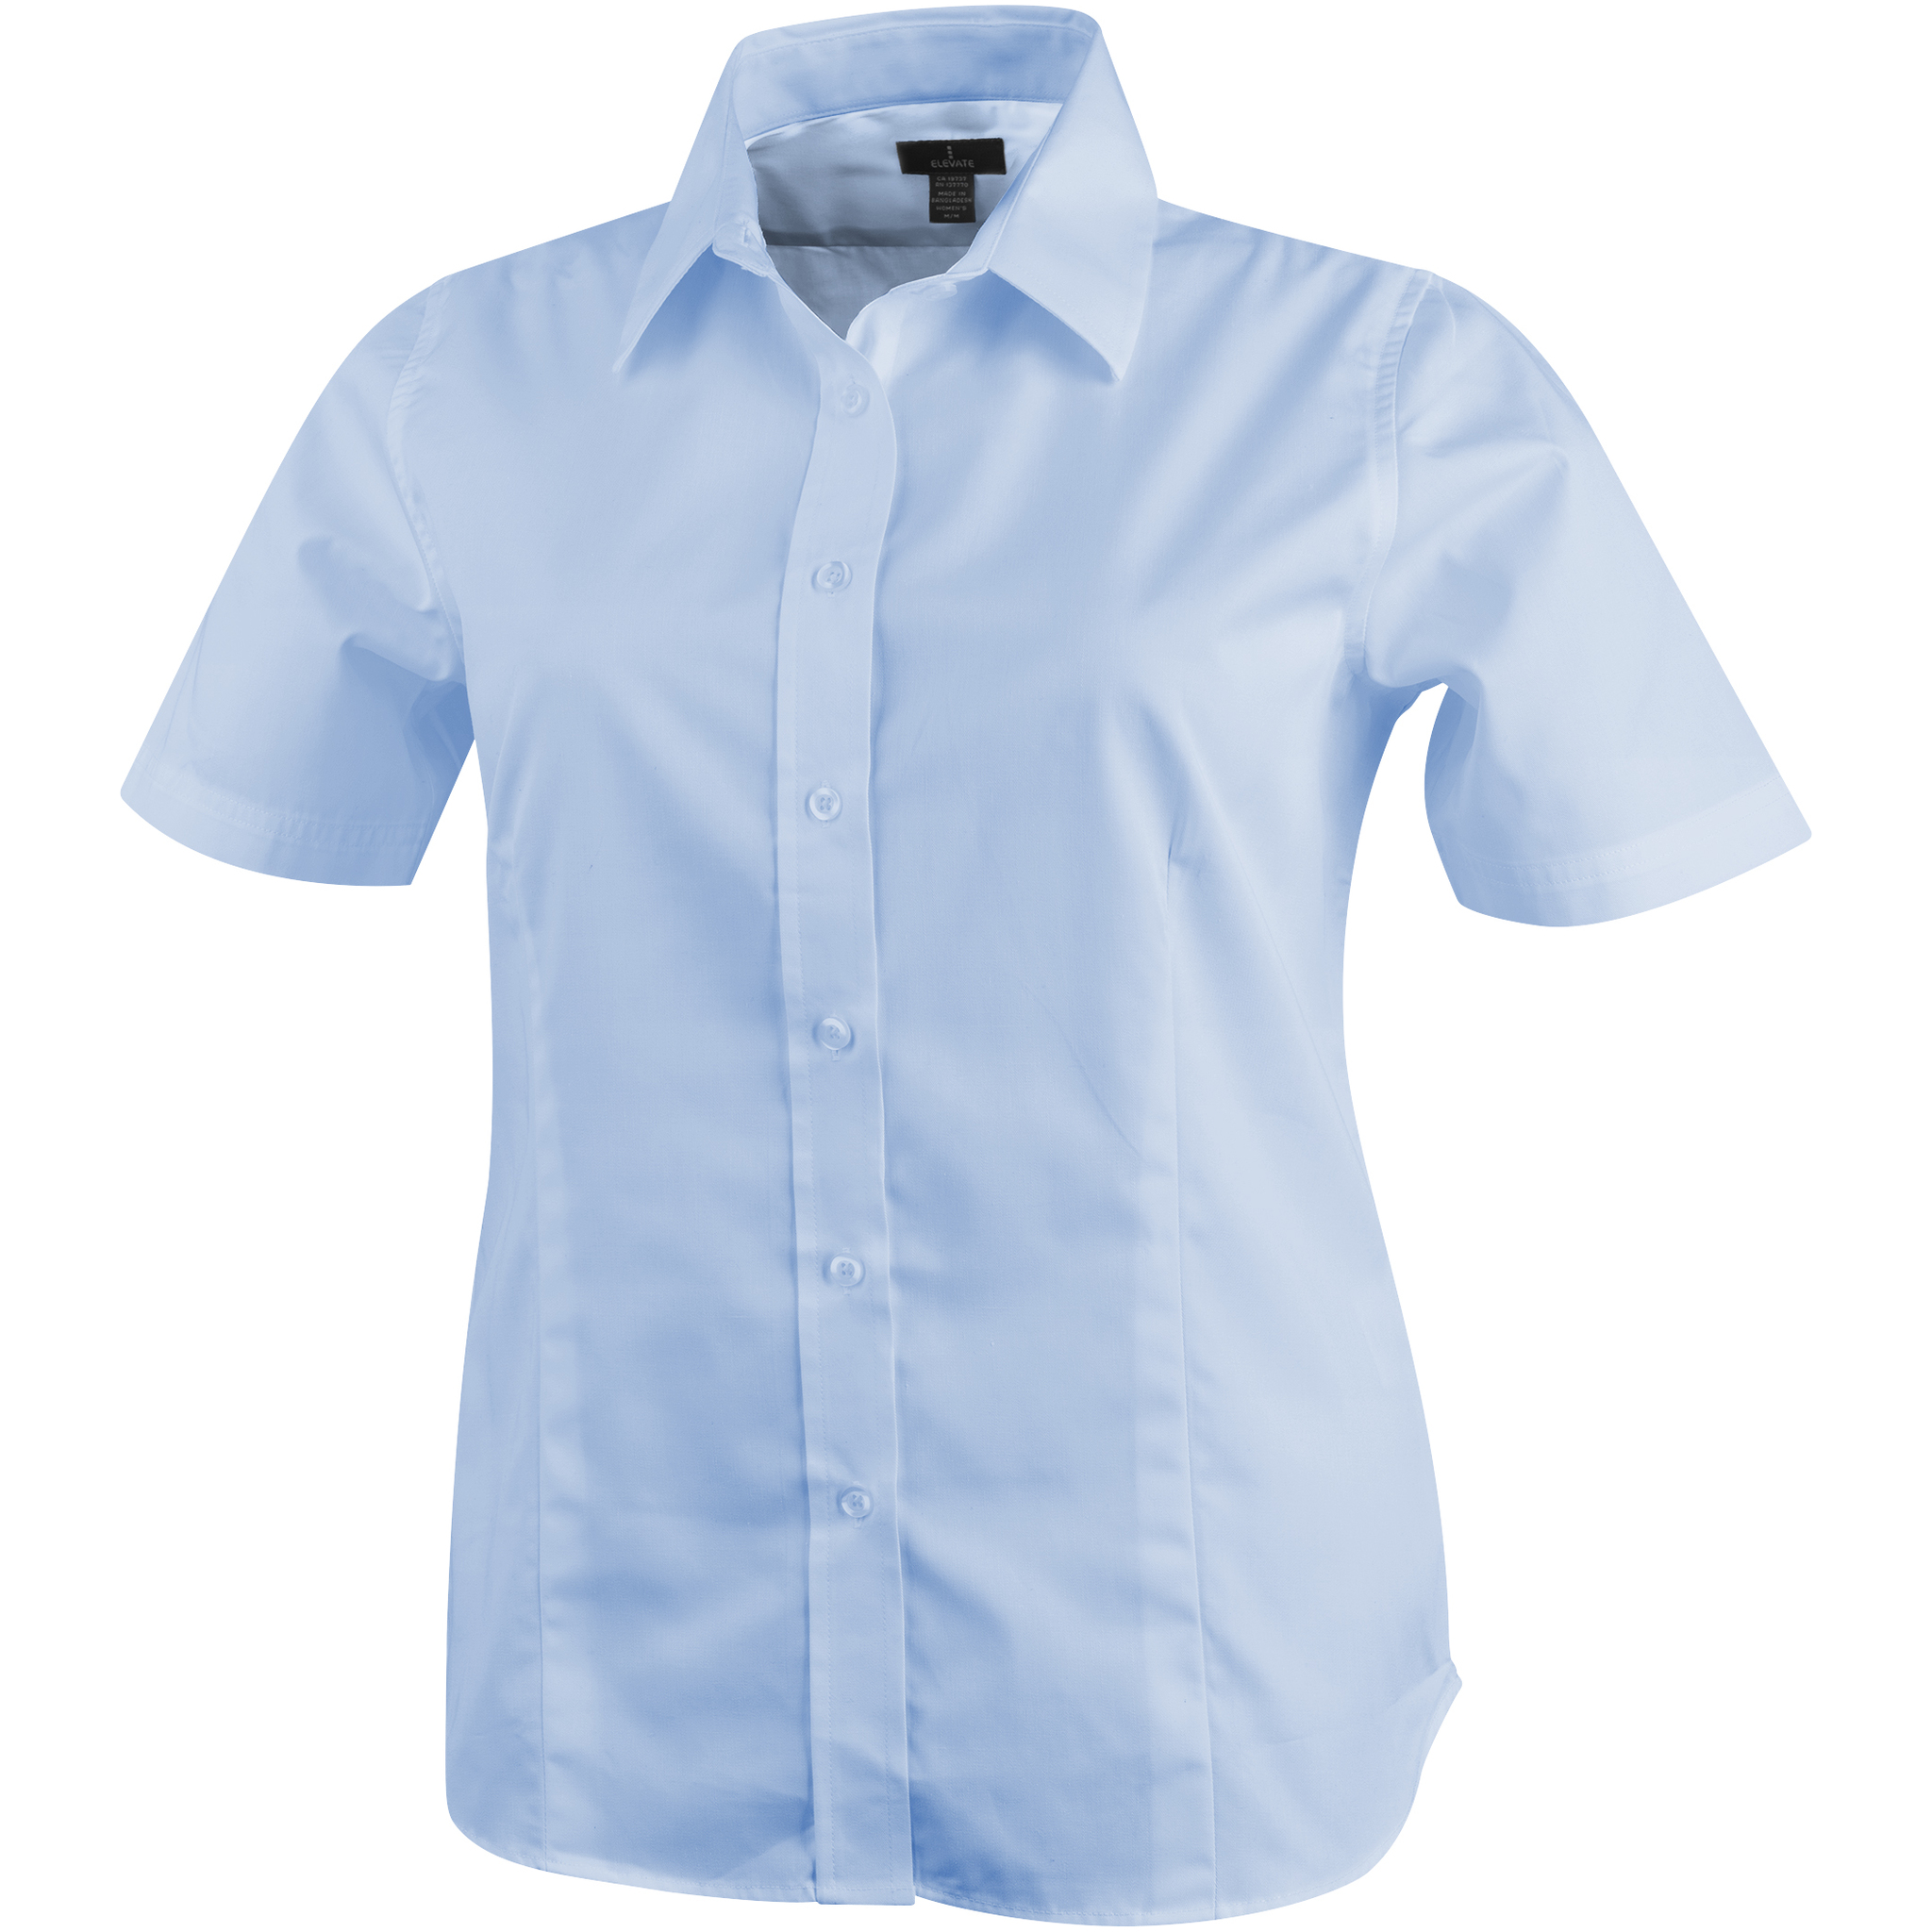 Elevate-Womens-Ladies-Stirling-Short-Sleeve-Shirt-PF1844